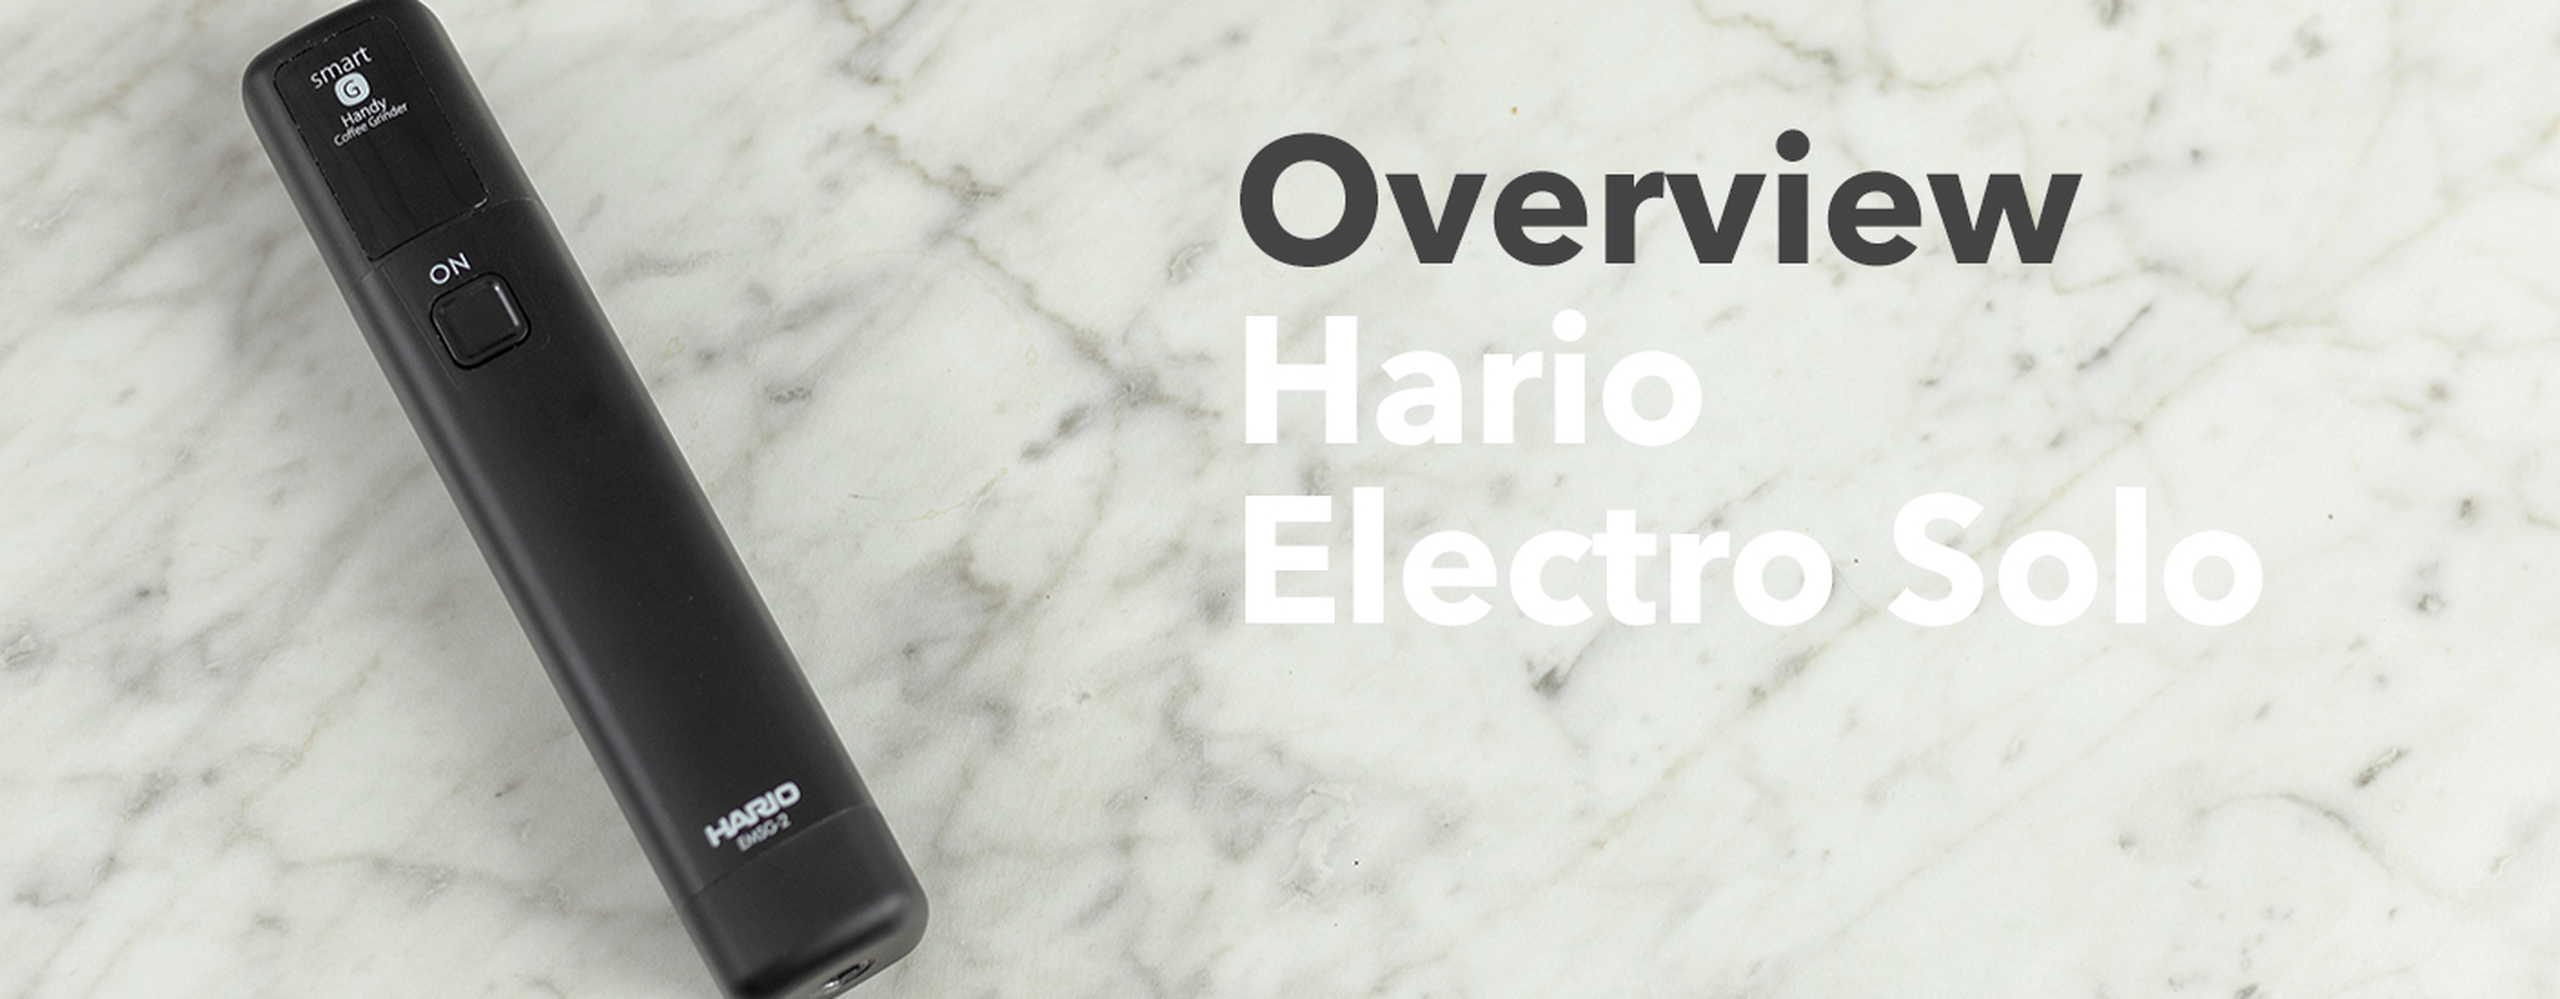 Hario Electric Solo Overview